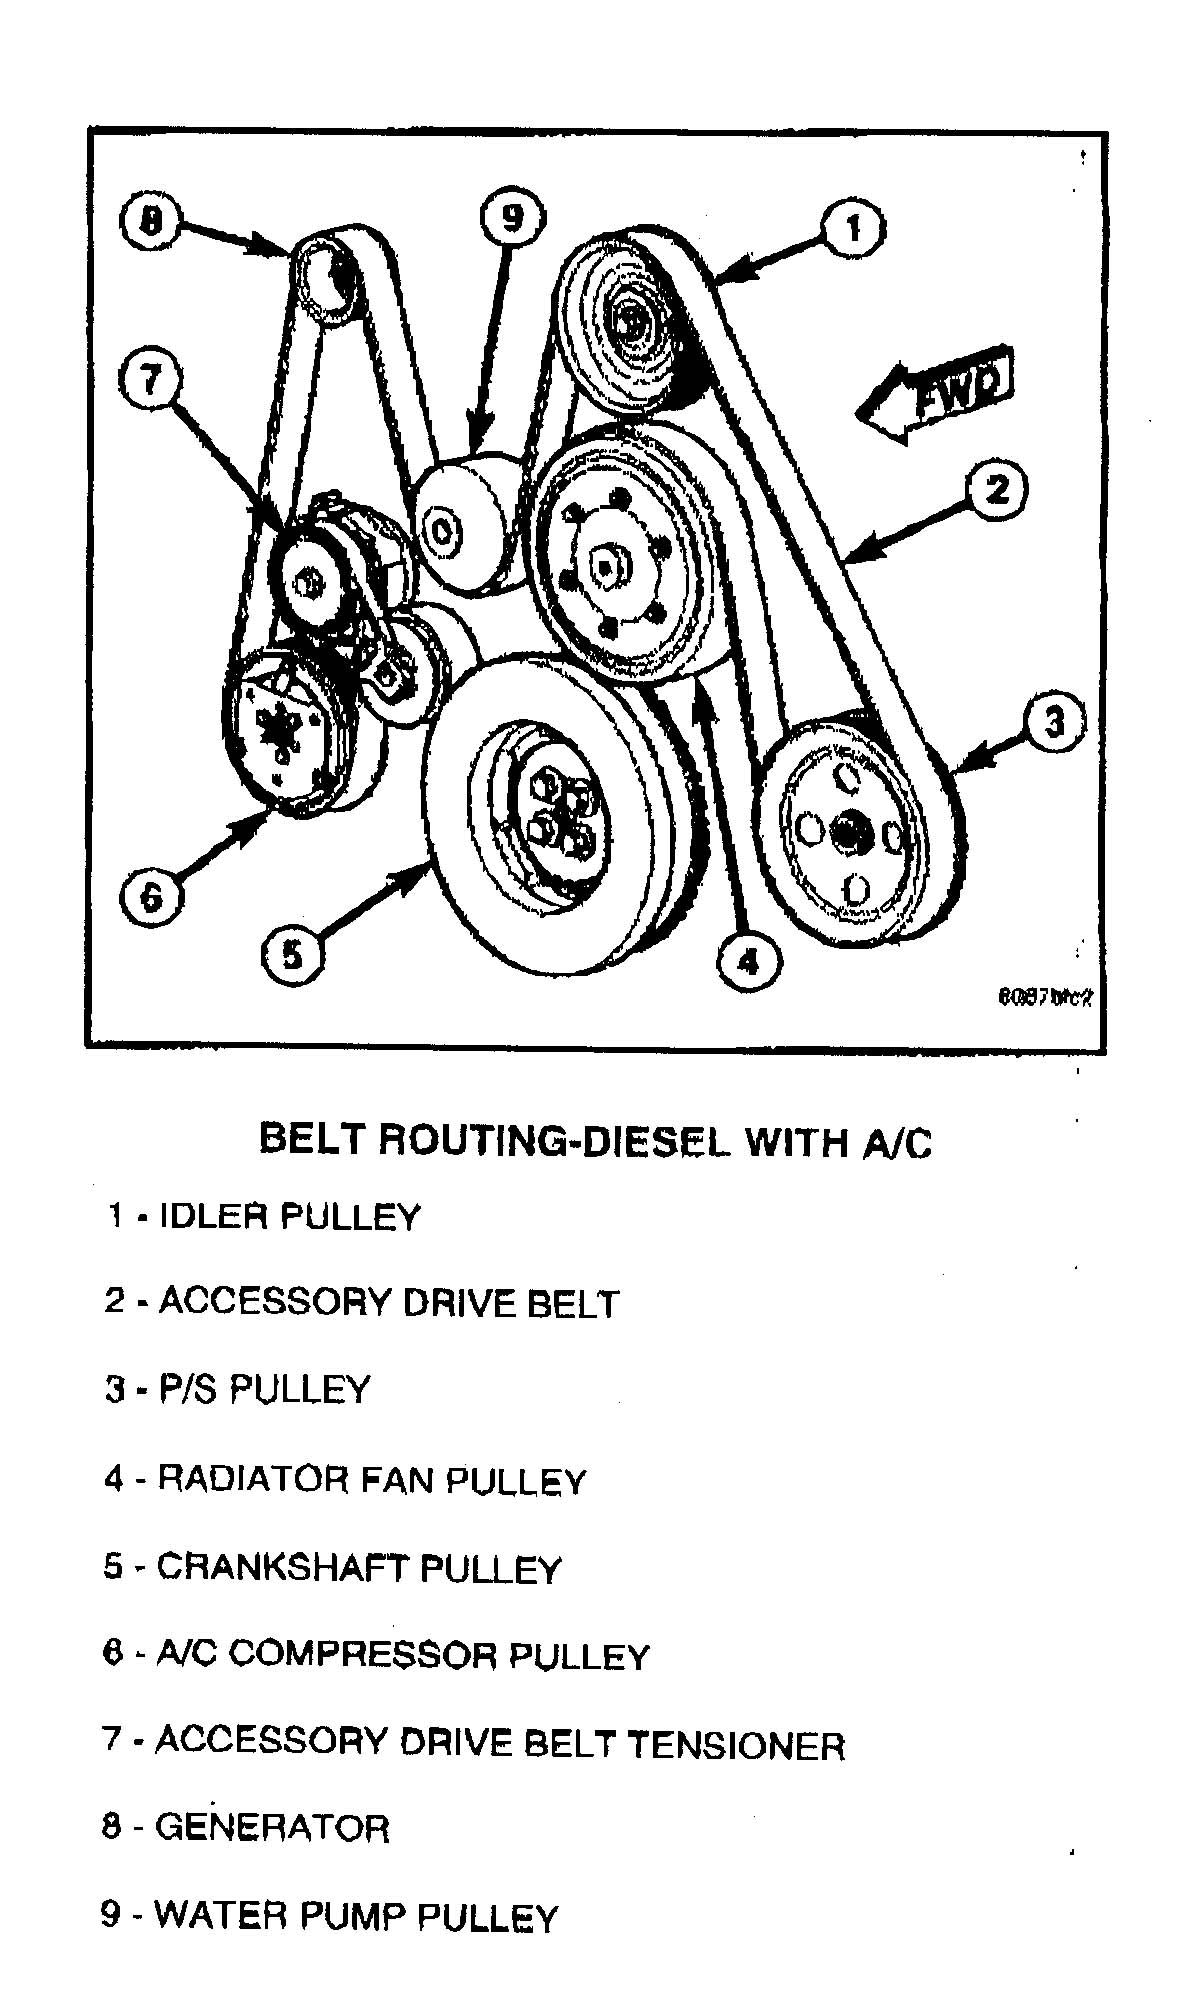 medium resolution of 6 7 belt routing diagram dodge diesel diesel truck resource 2012 dodge ram 2500 6 7 serpentine belt diagram